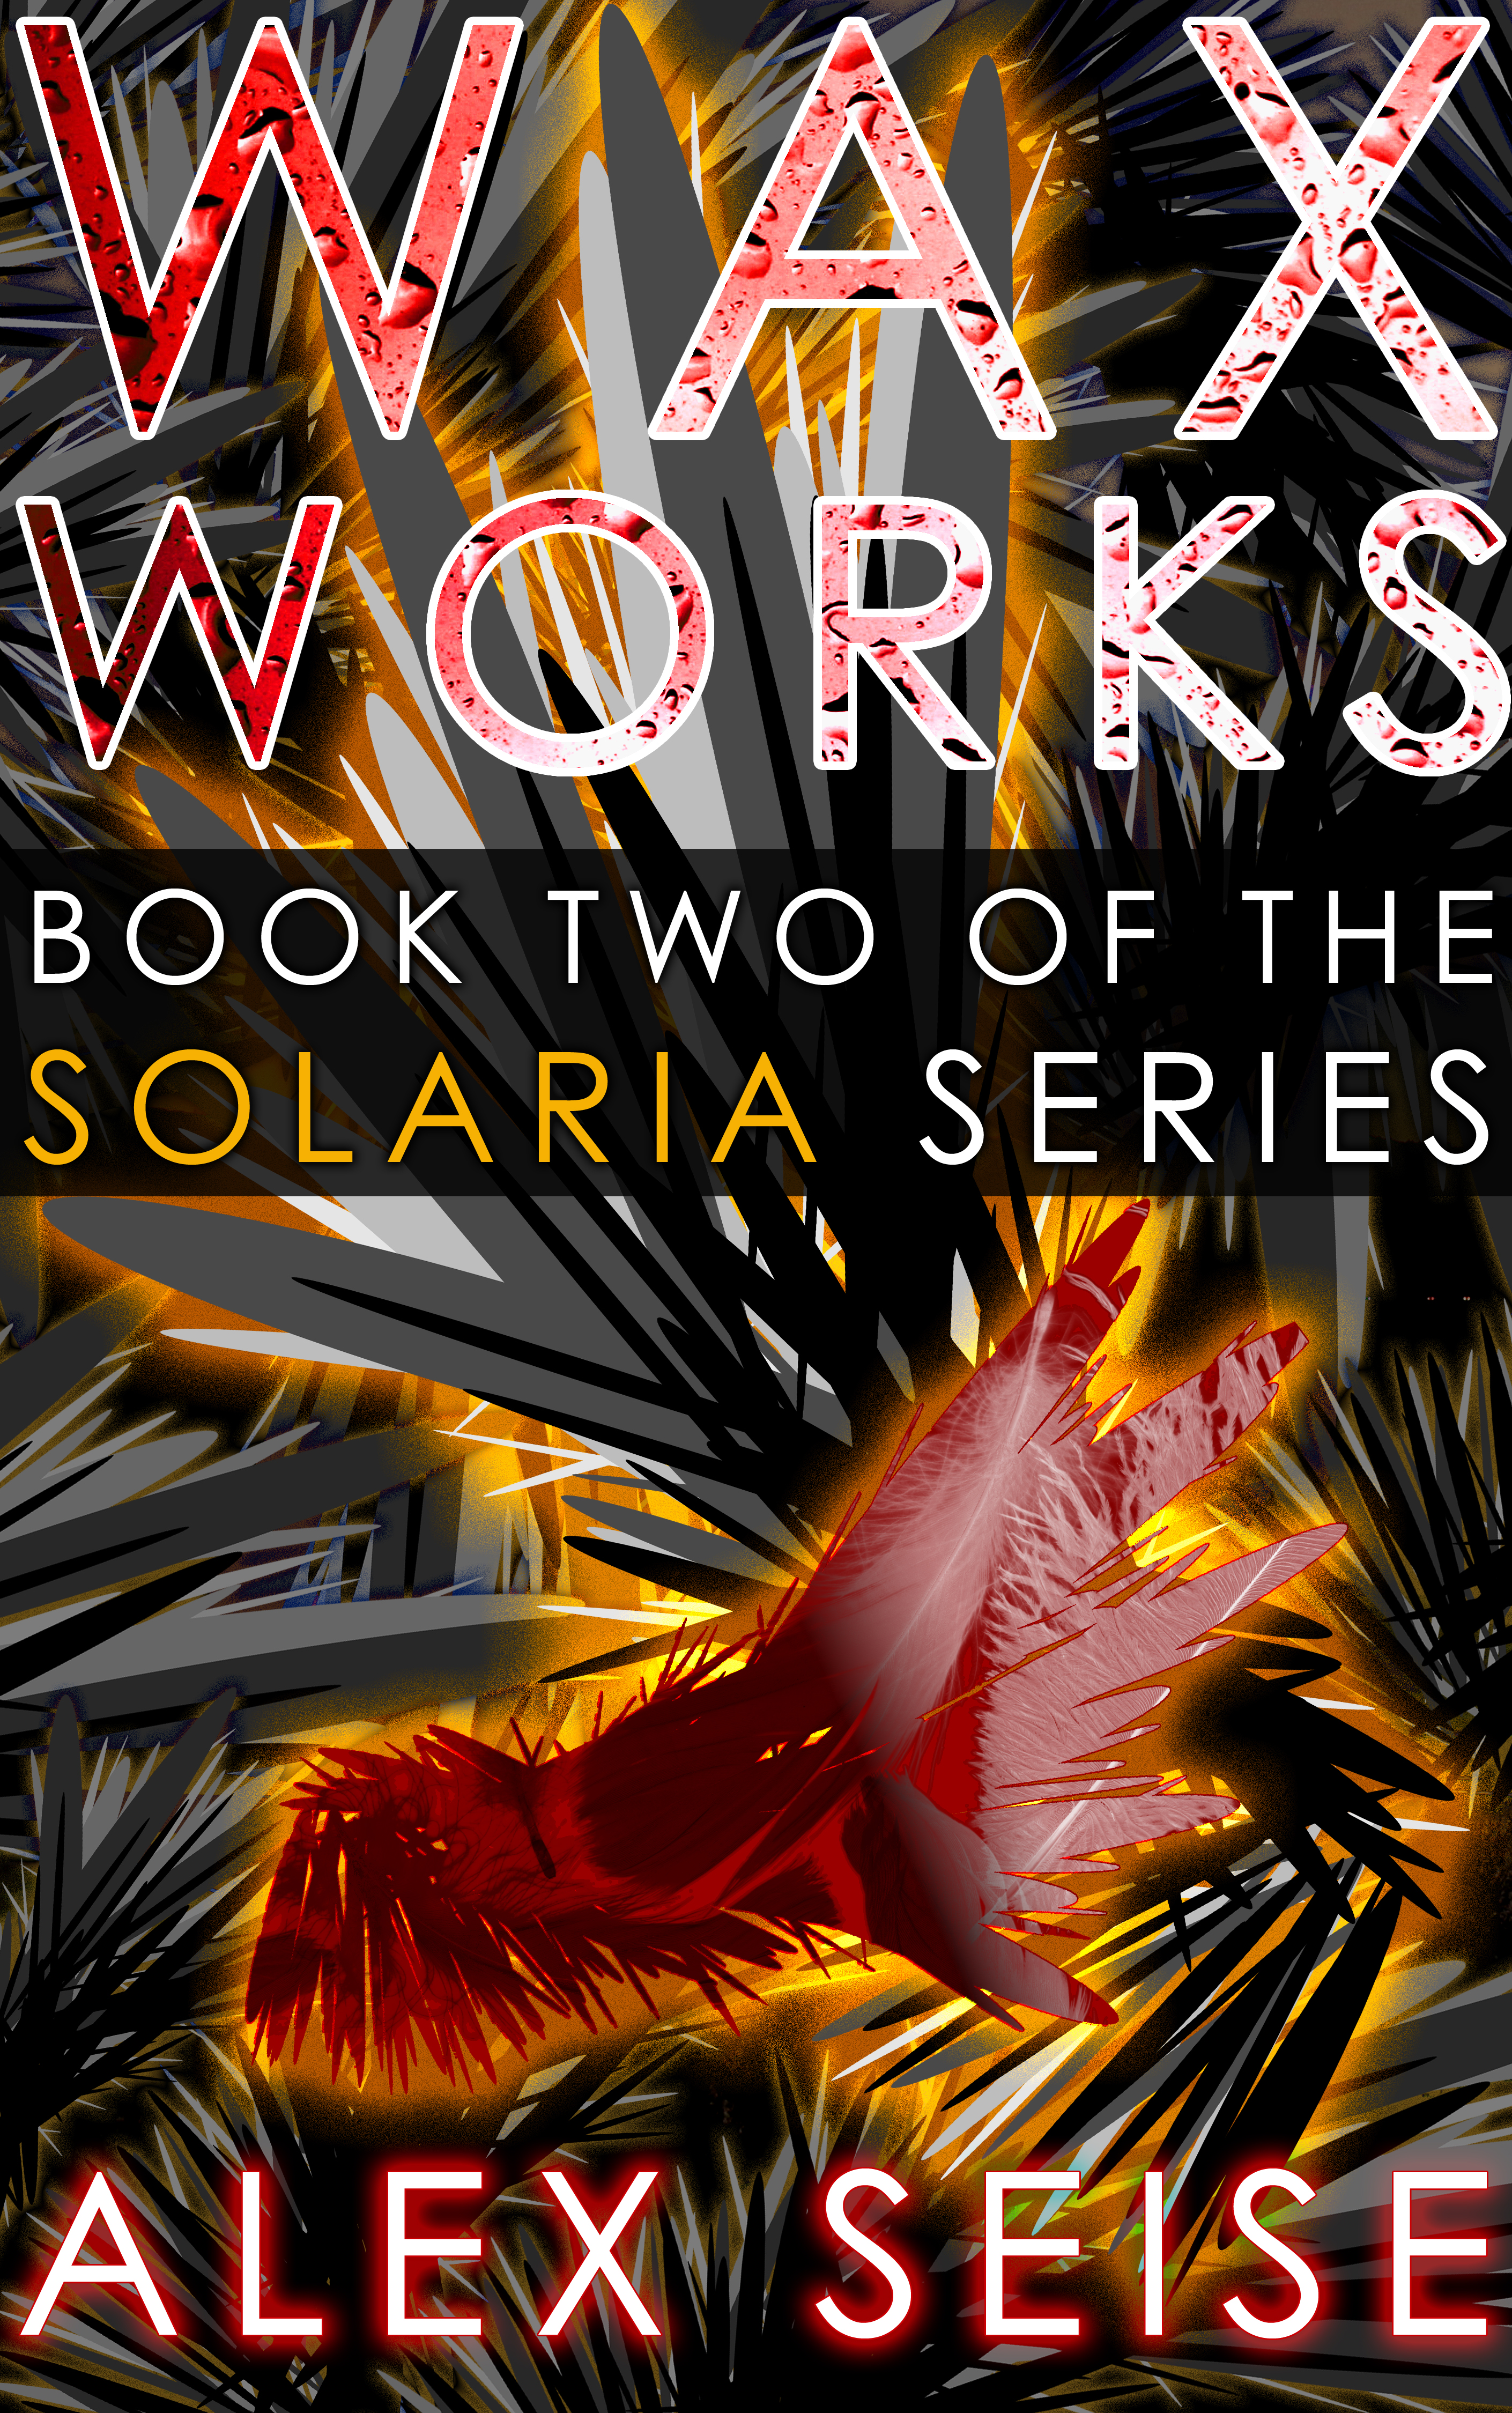 Introducing WAX WORKS: Book Two of the Solaria Series!